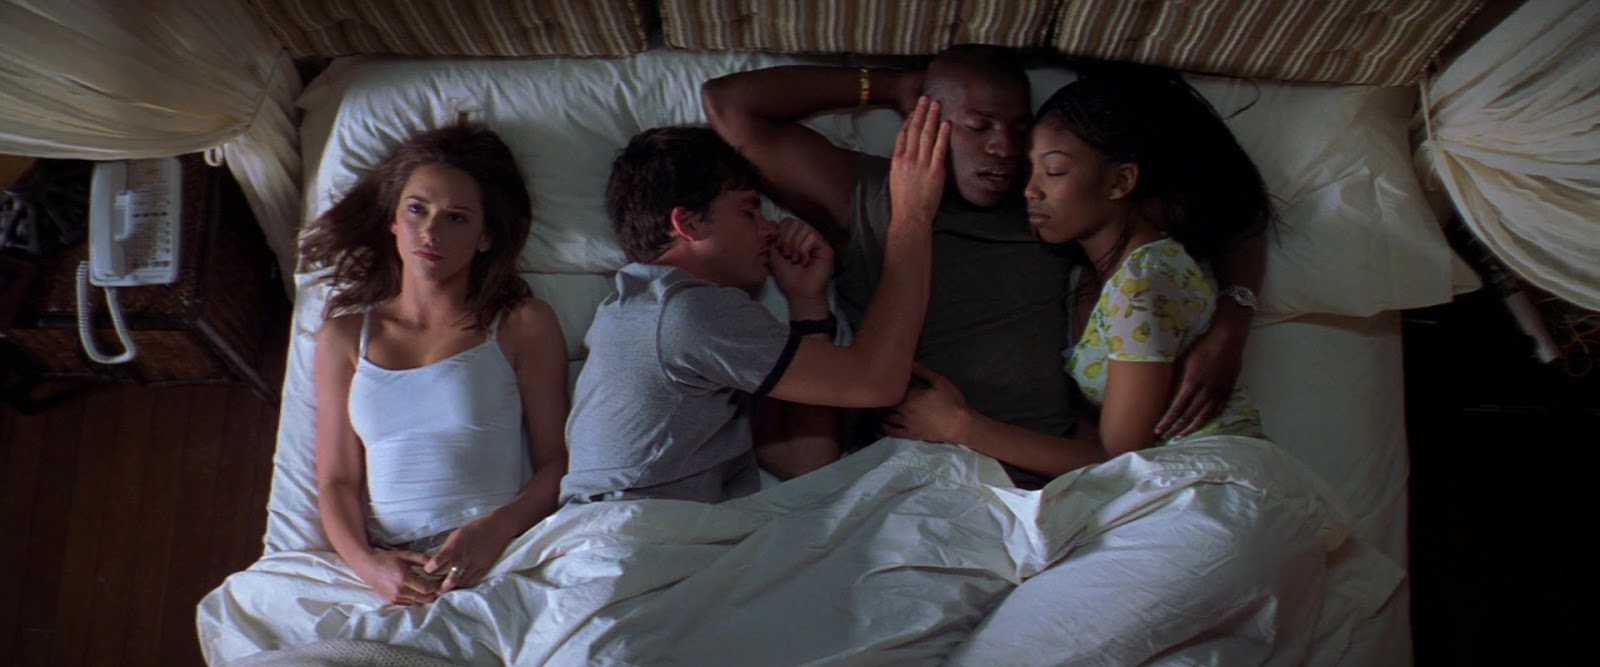 Jennifer Love Hewitt, Mekhi Phifer, Brandy Norwood, and Matthew Settle in I Still Know What You Did Last Summer (1998)